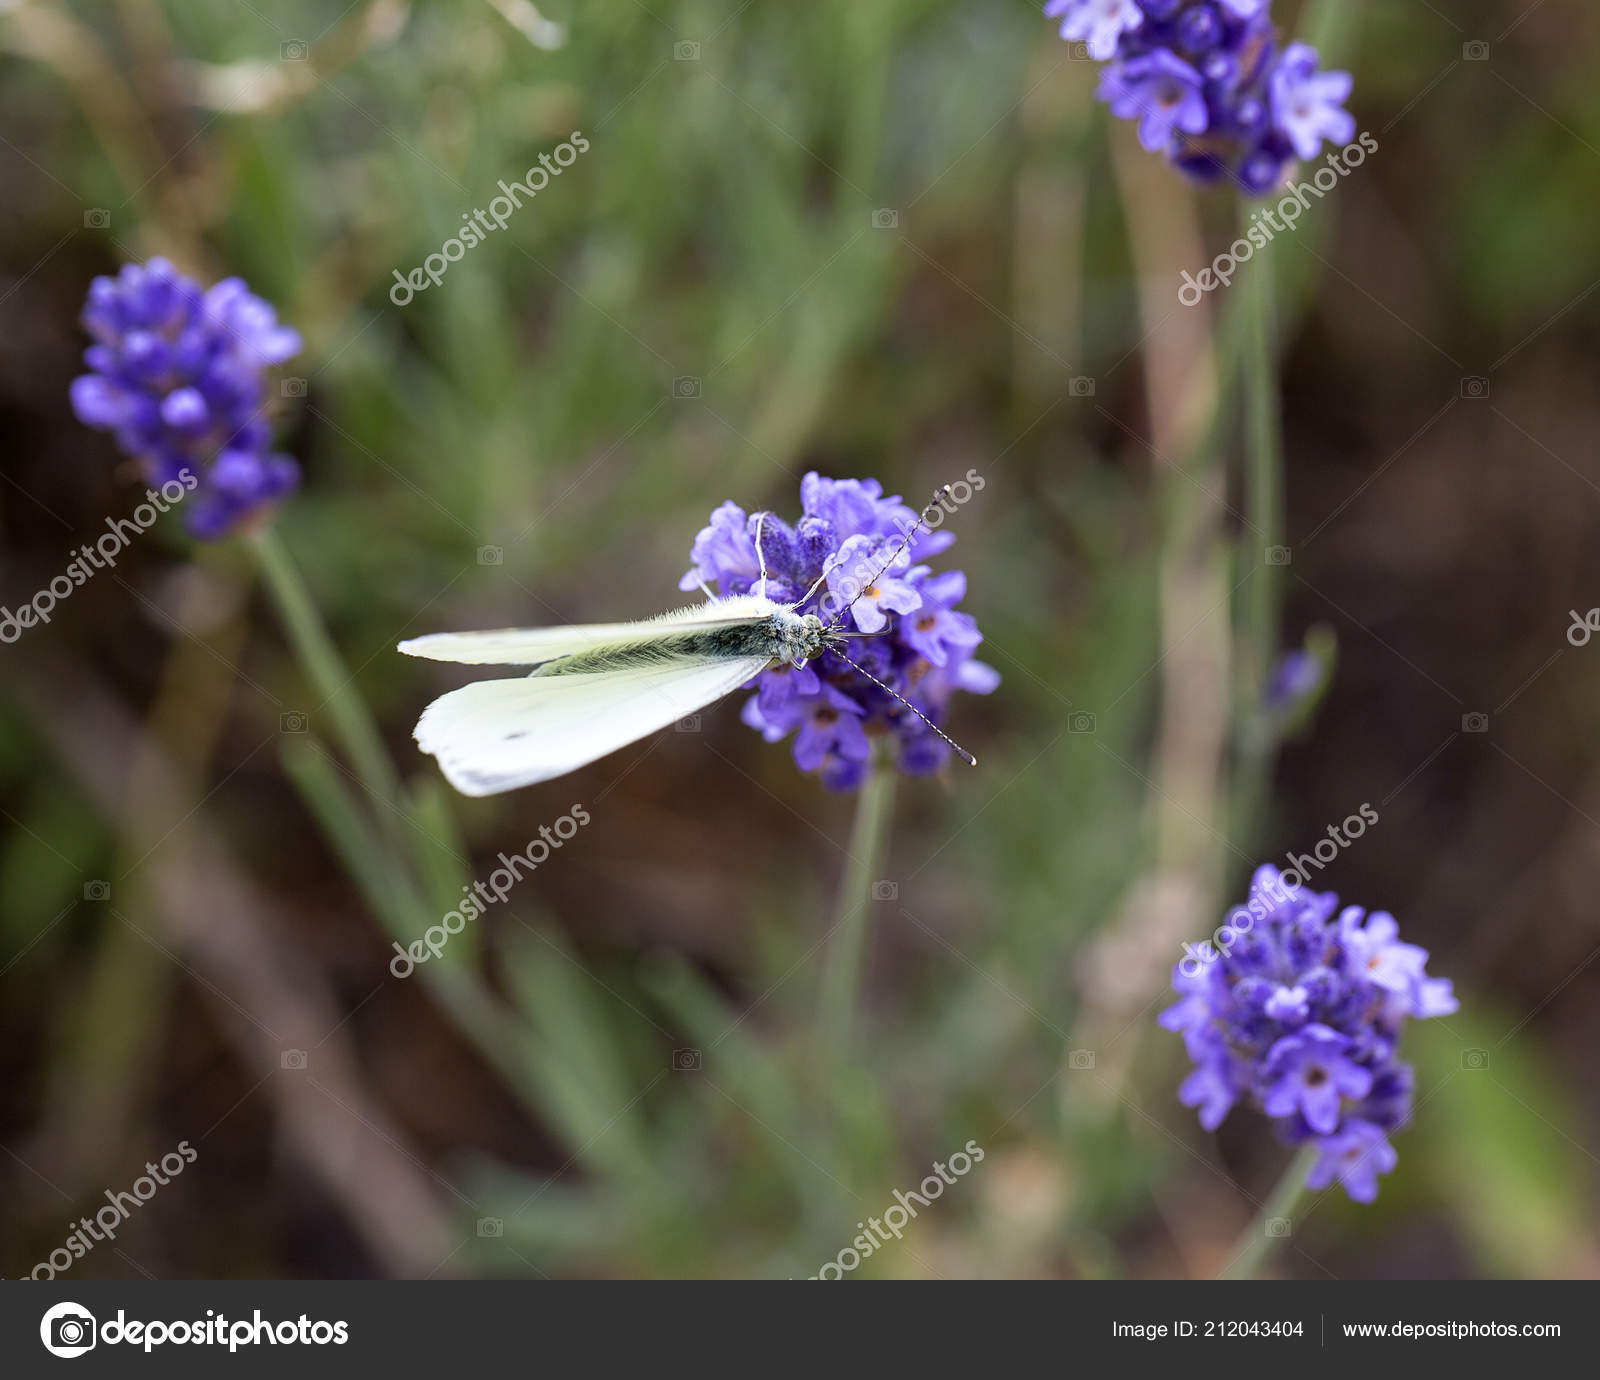 Lavender flowers blooming garden butterfly beautiful lavender field lavender flowers blooming garden butterfly beautiful lavender field stock photo izmirmasajfo